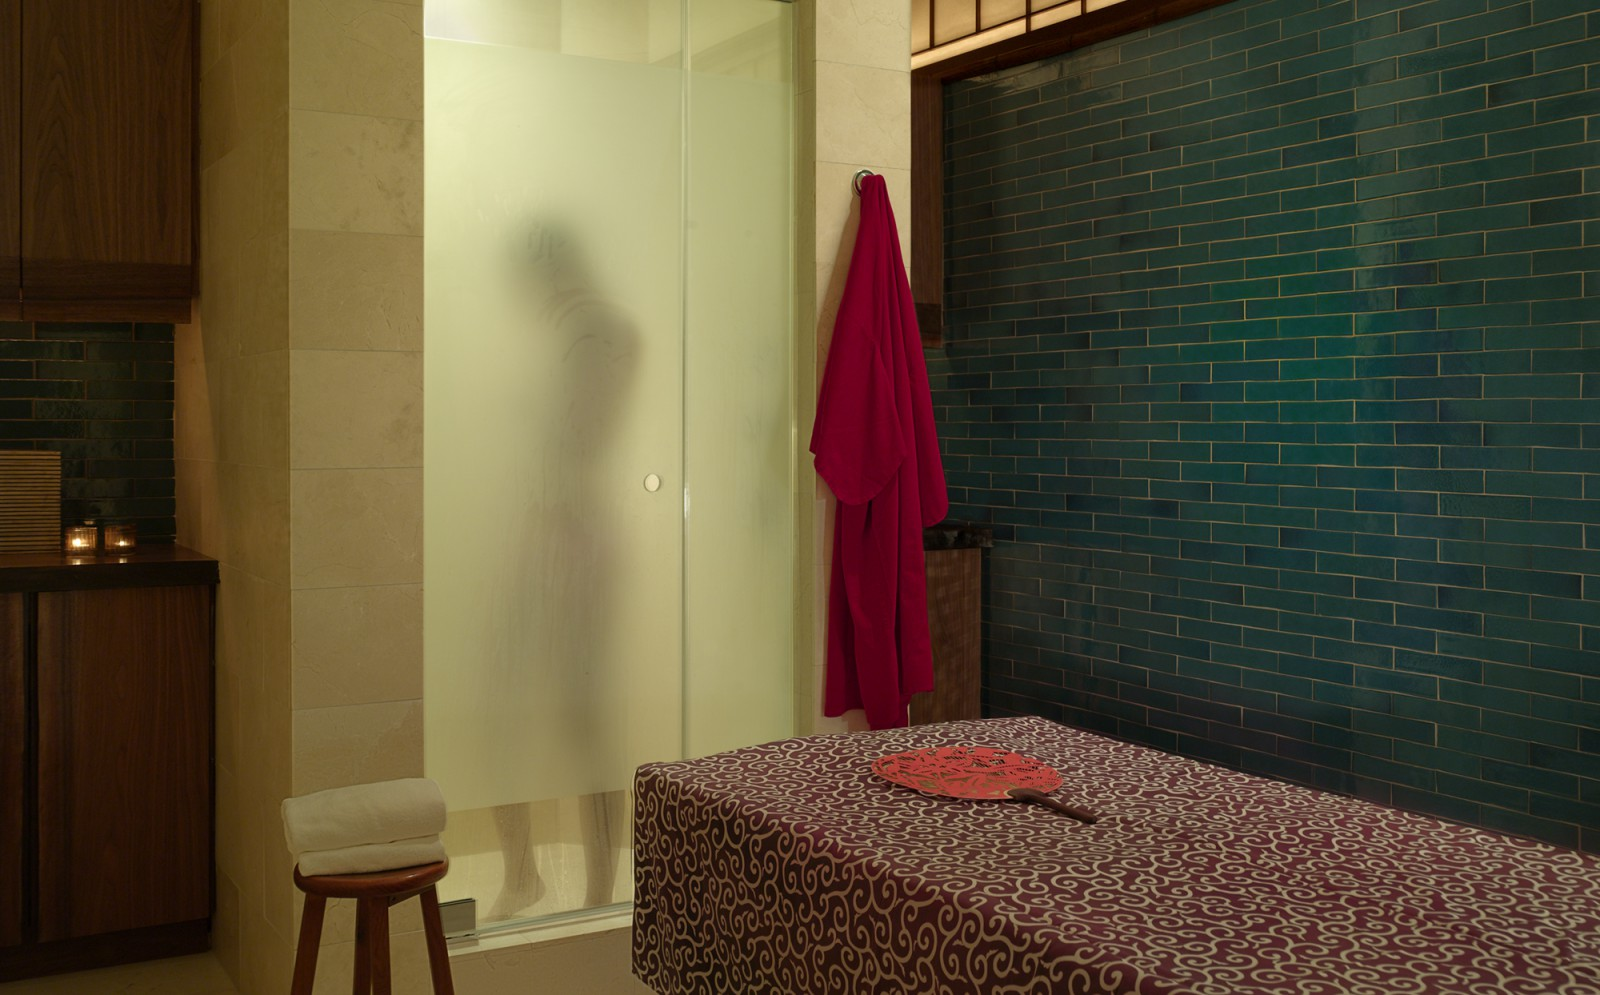 Private showers at the Greenwich Hotel's Shibui Spa